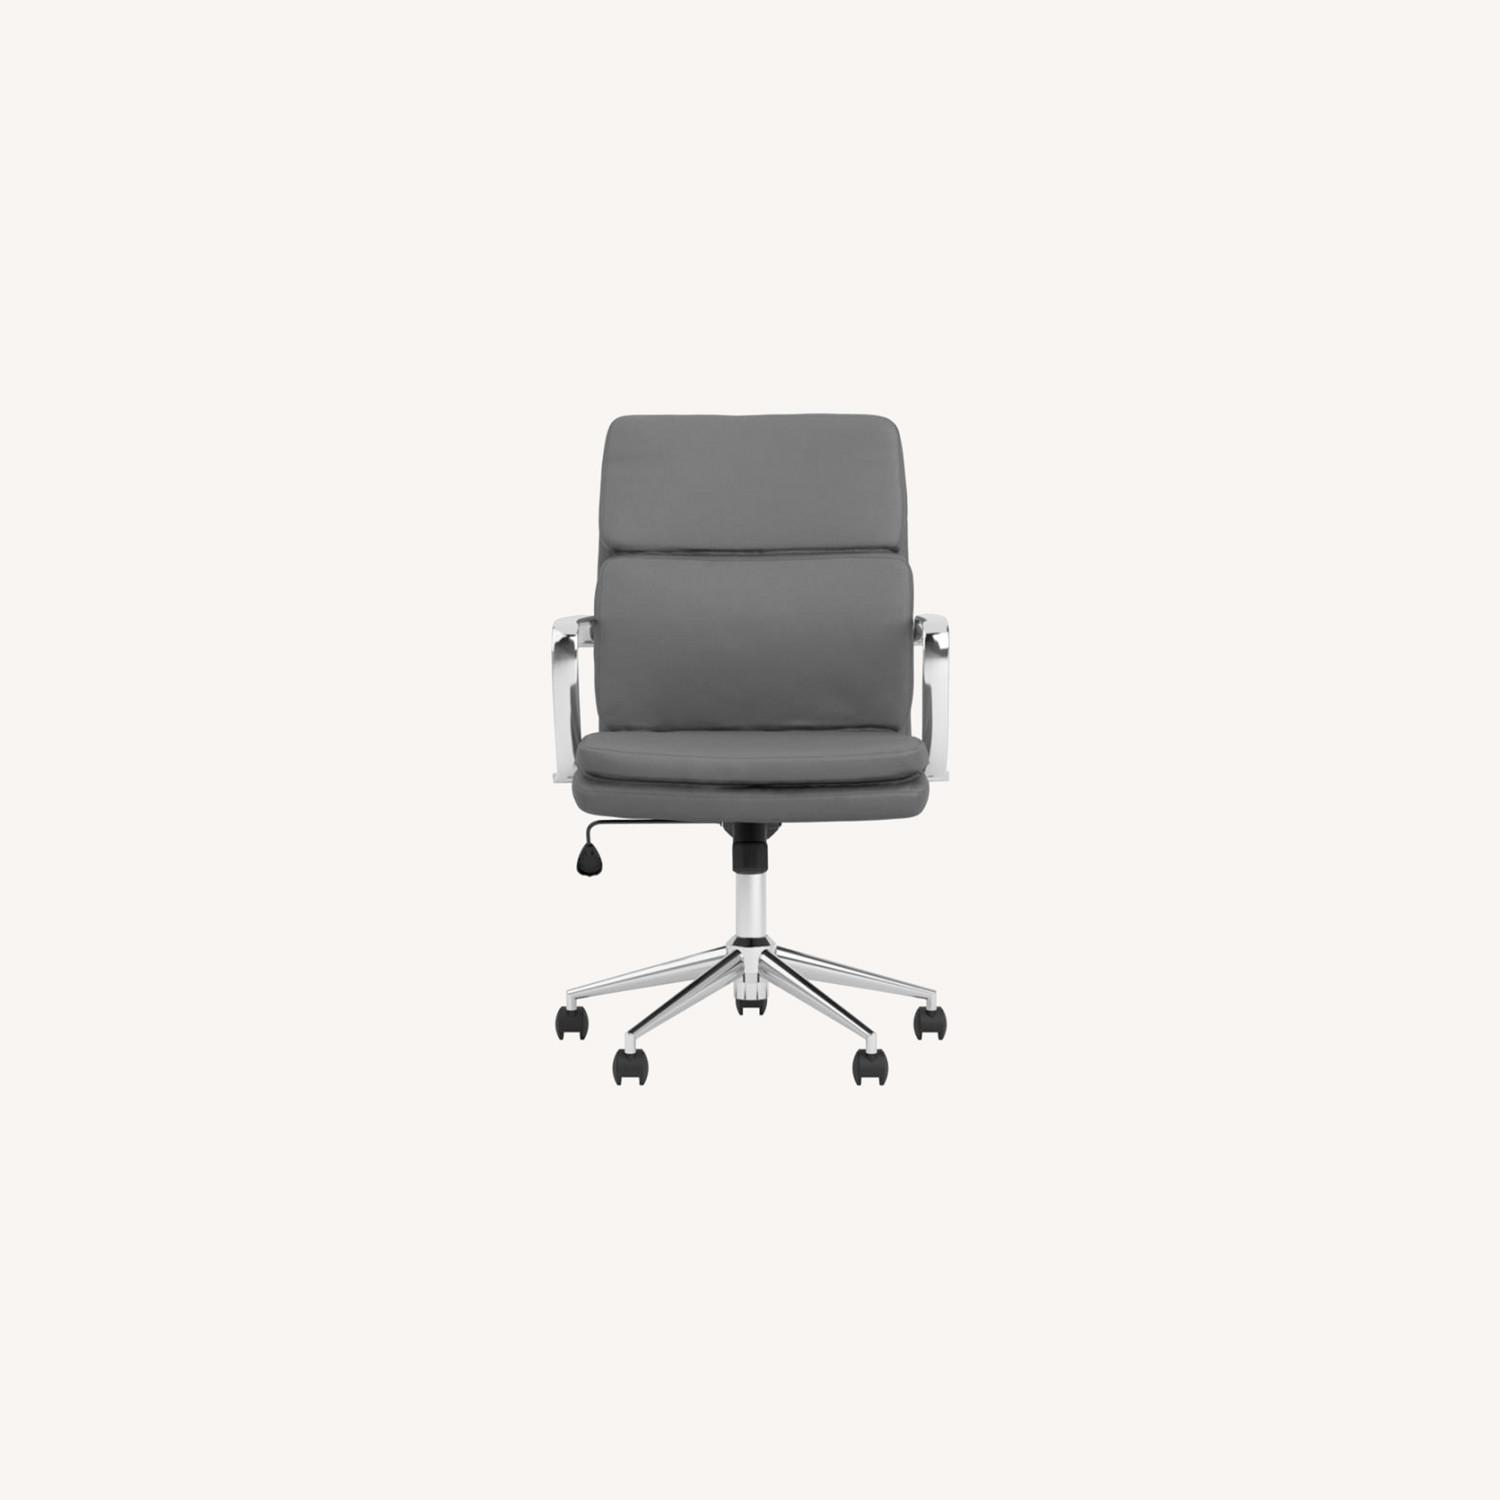 Office Chair In Grey Leatherette & Chrome Finish - image-9